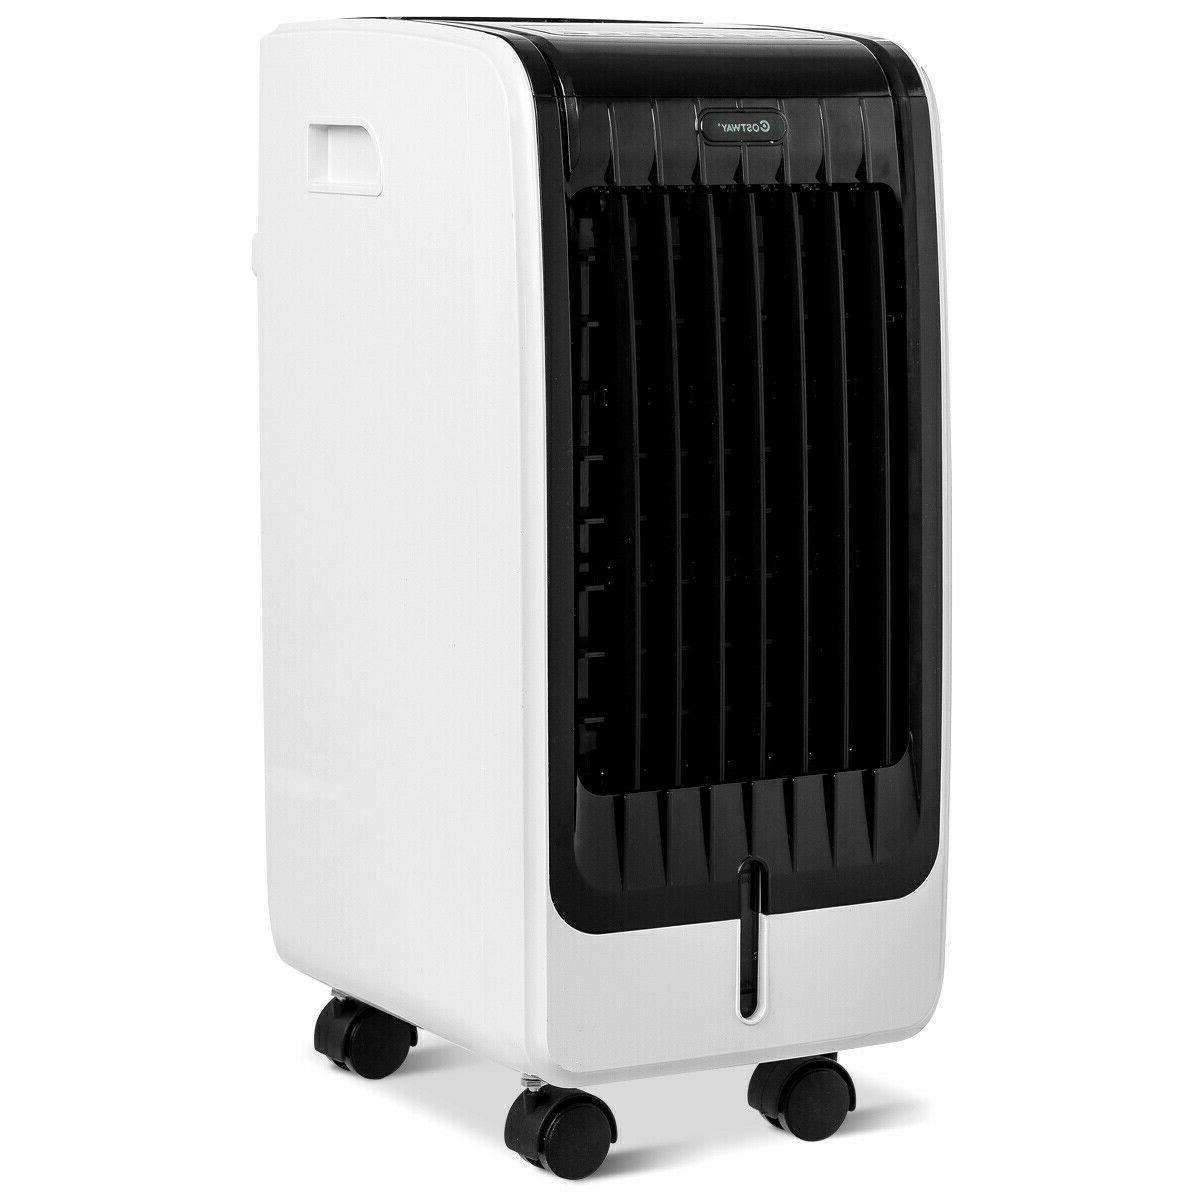 Portable Conditioner Cooler Unit Remote Control Room